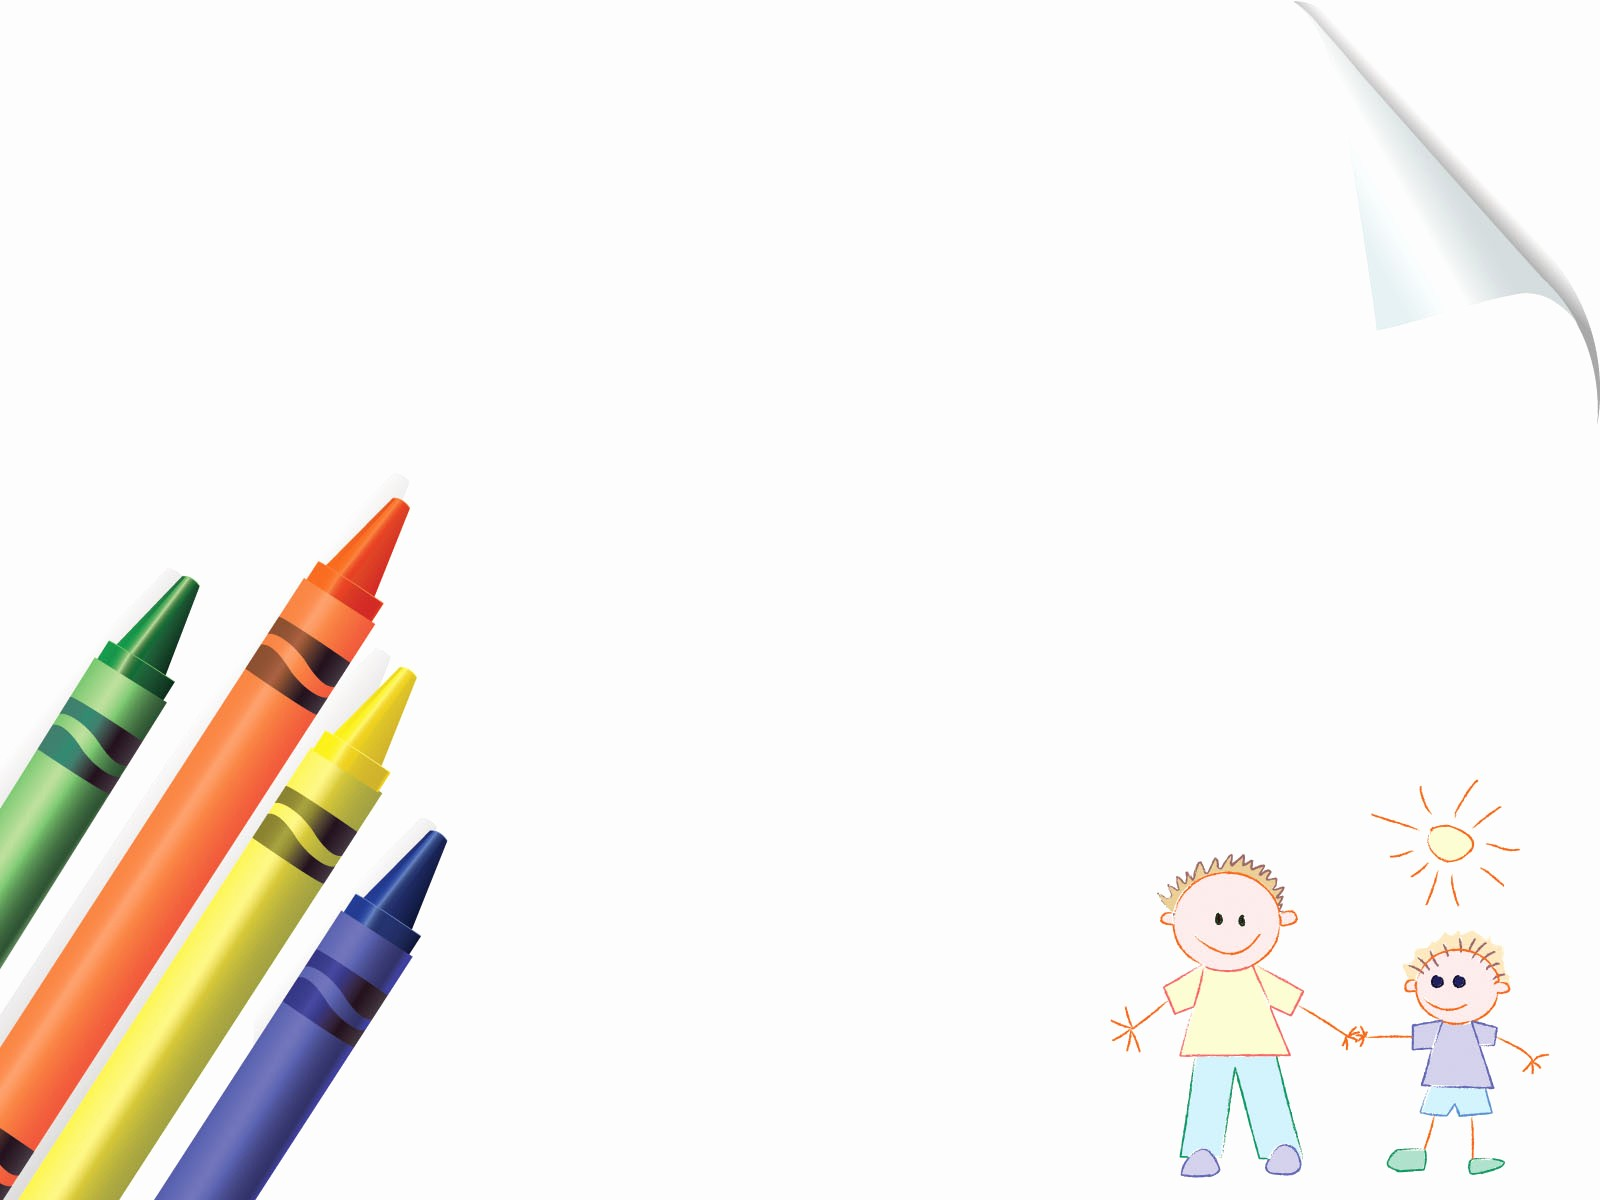 Cute School Backgrounds for Powerpoint Inspirational Crayons Board School Powerpoint Templates Blue